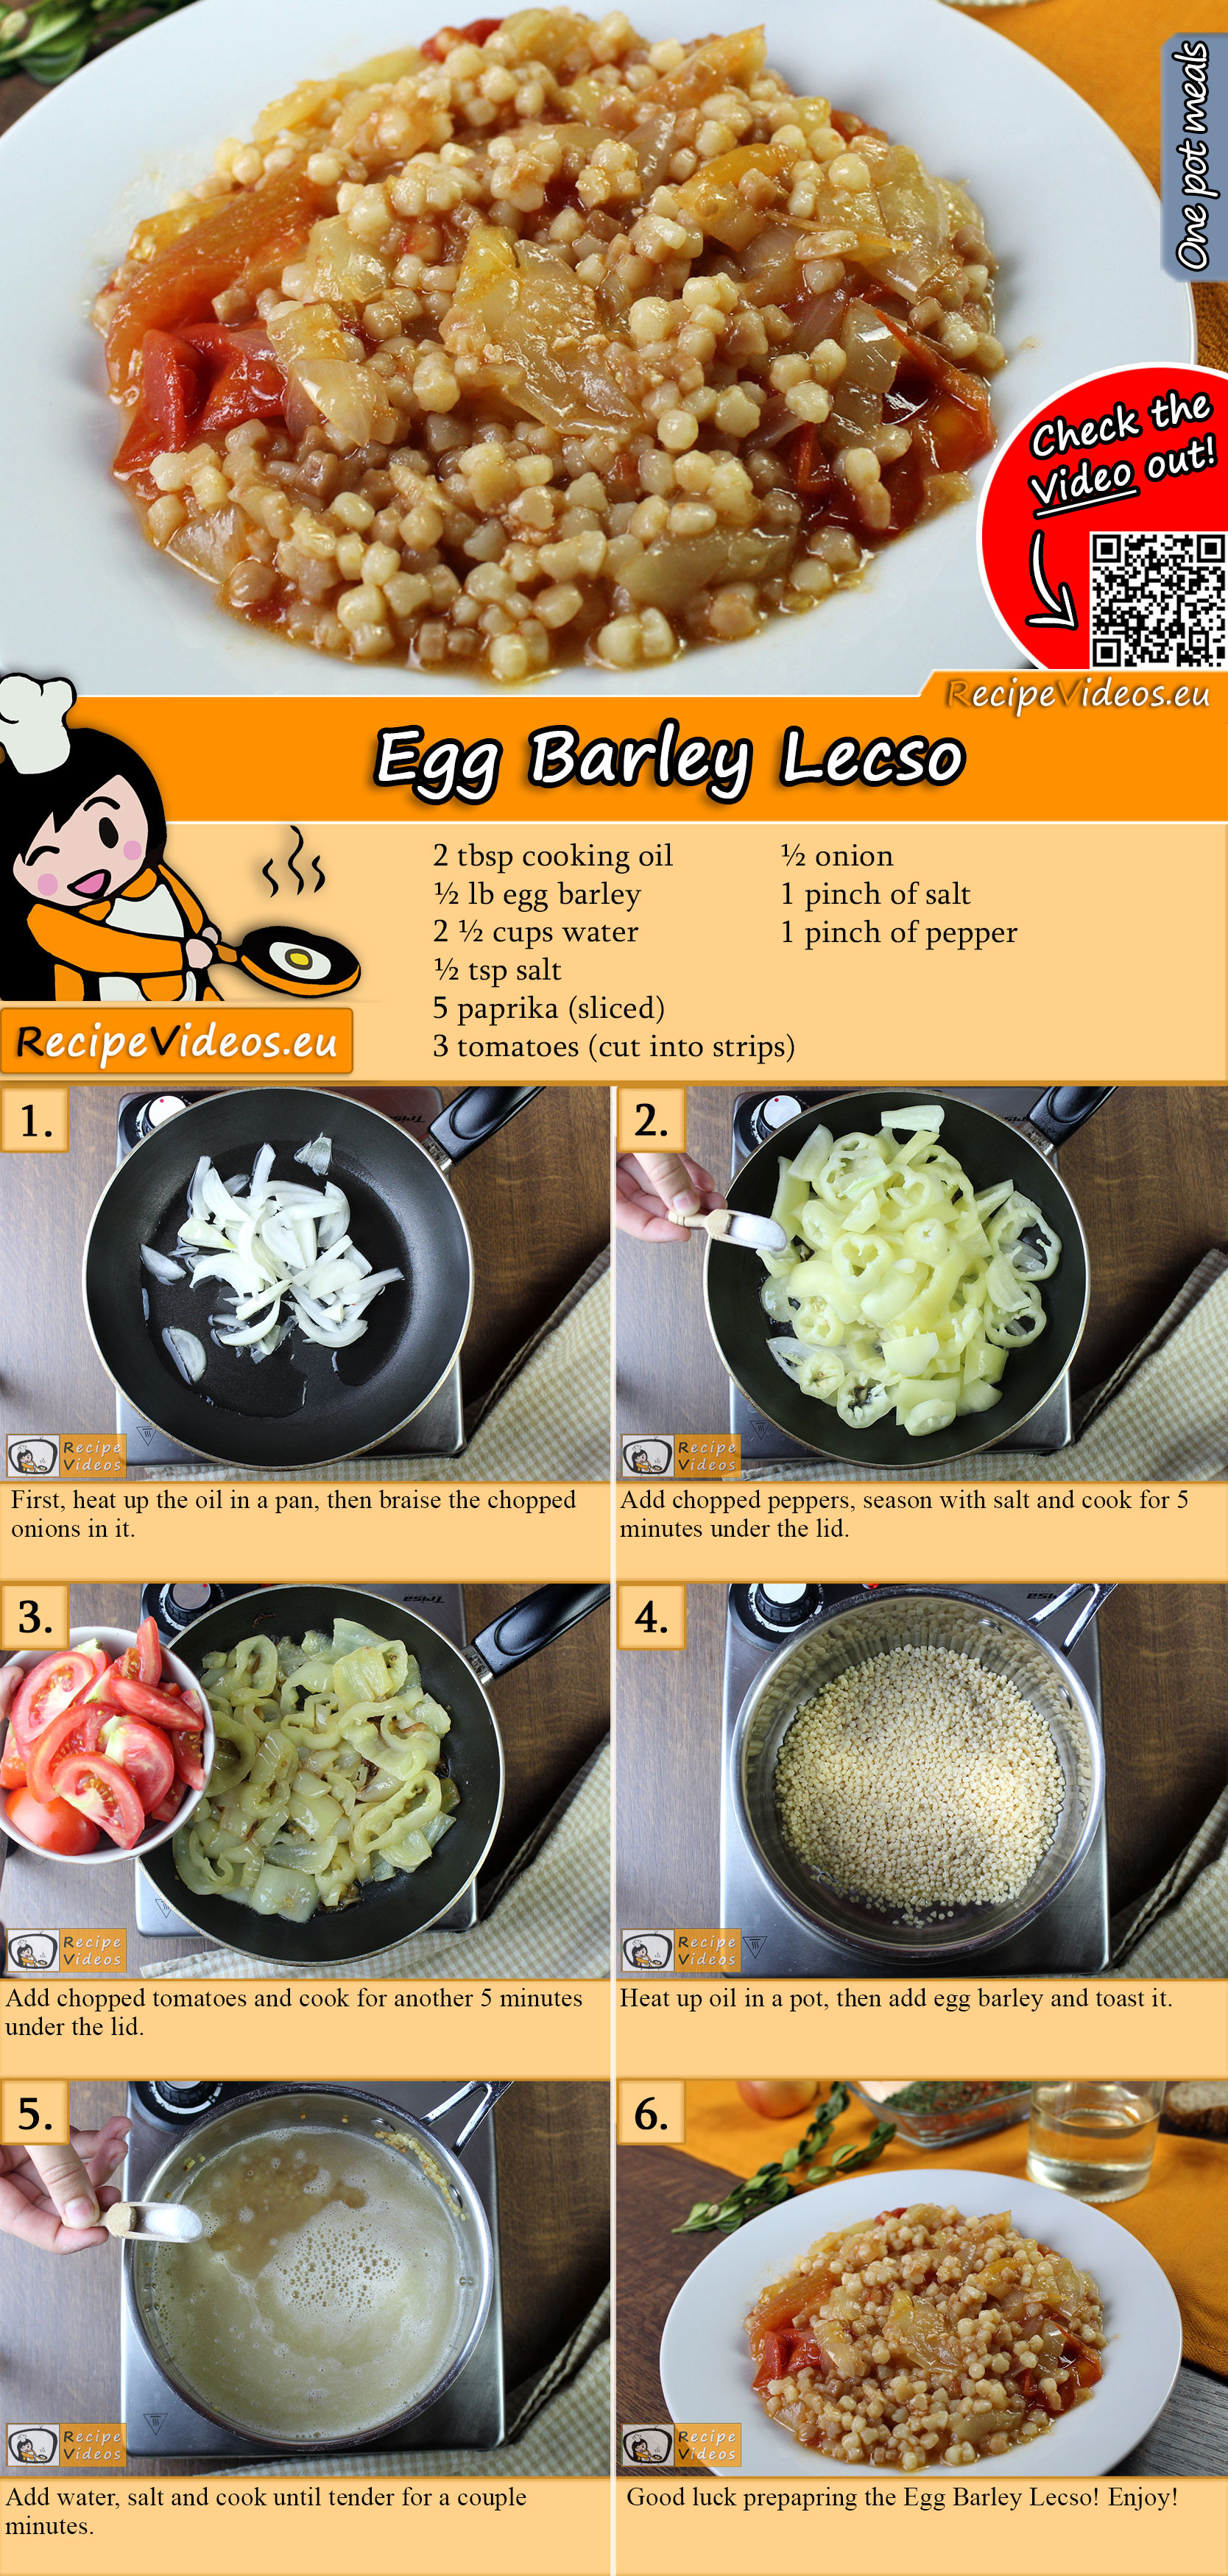 Egg Barley Lecso recipe with video